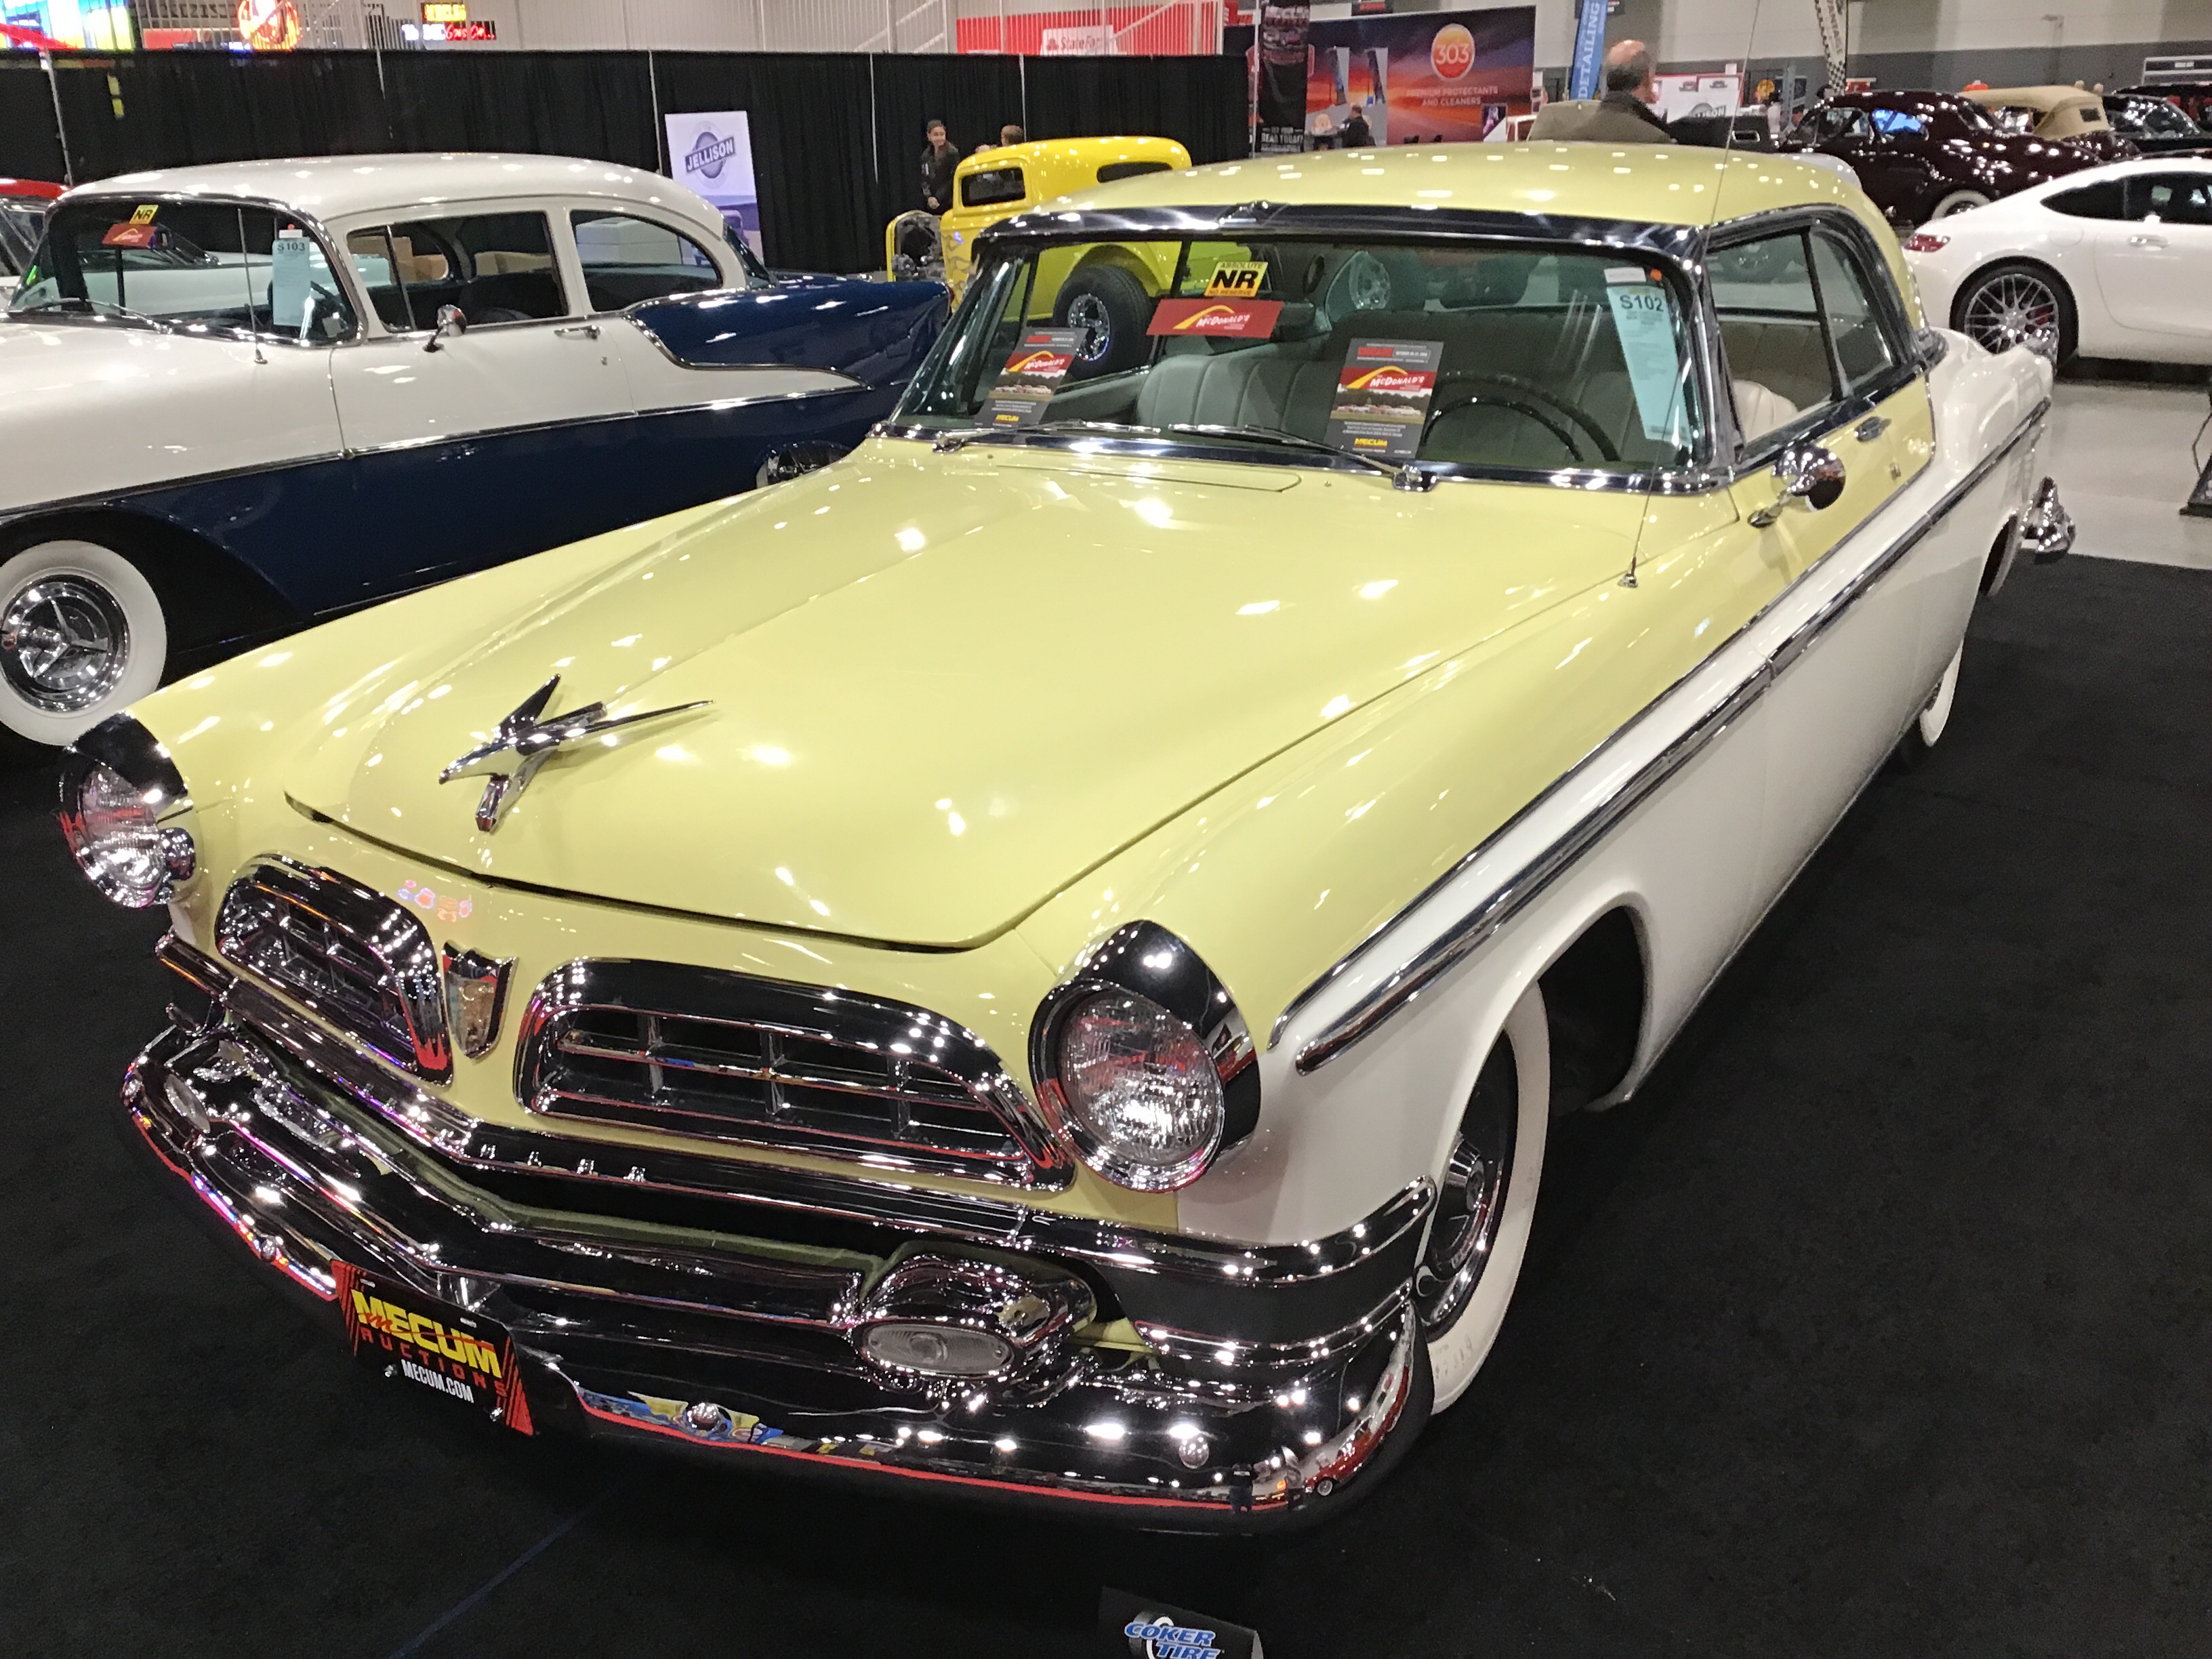 1955 Chrysler New Yorker DeLuxe Values | Hagerty Valuation Tool®